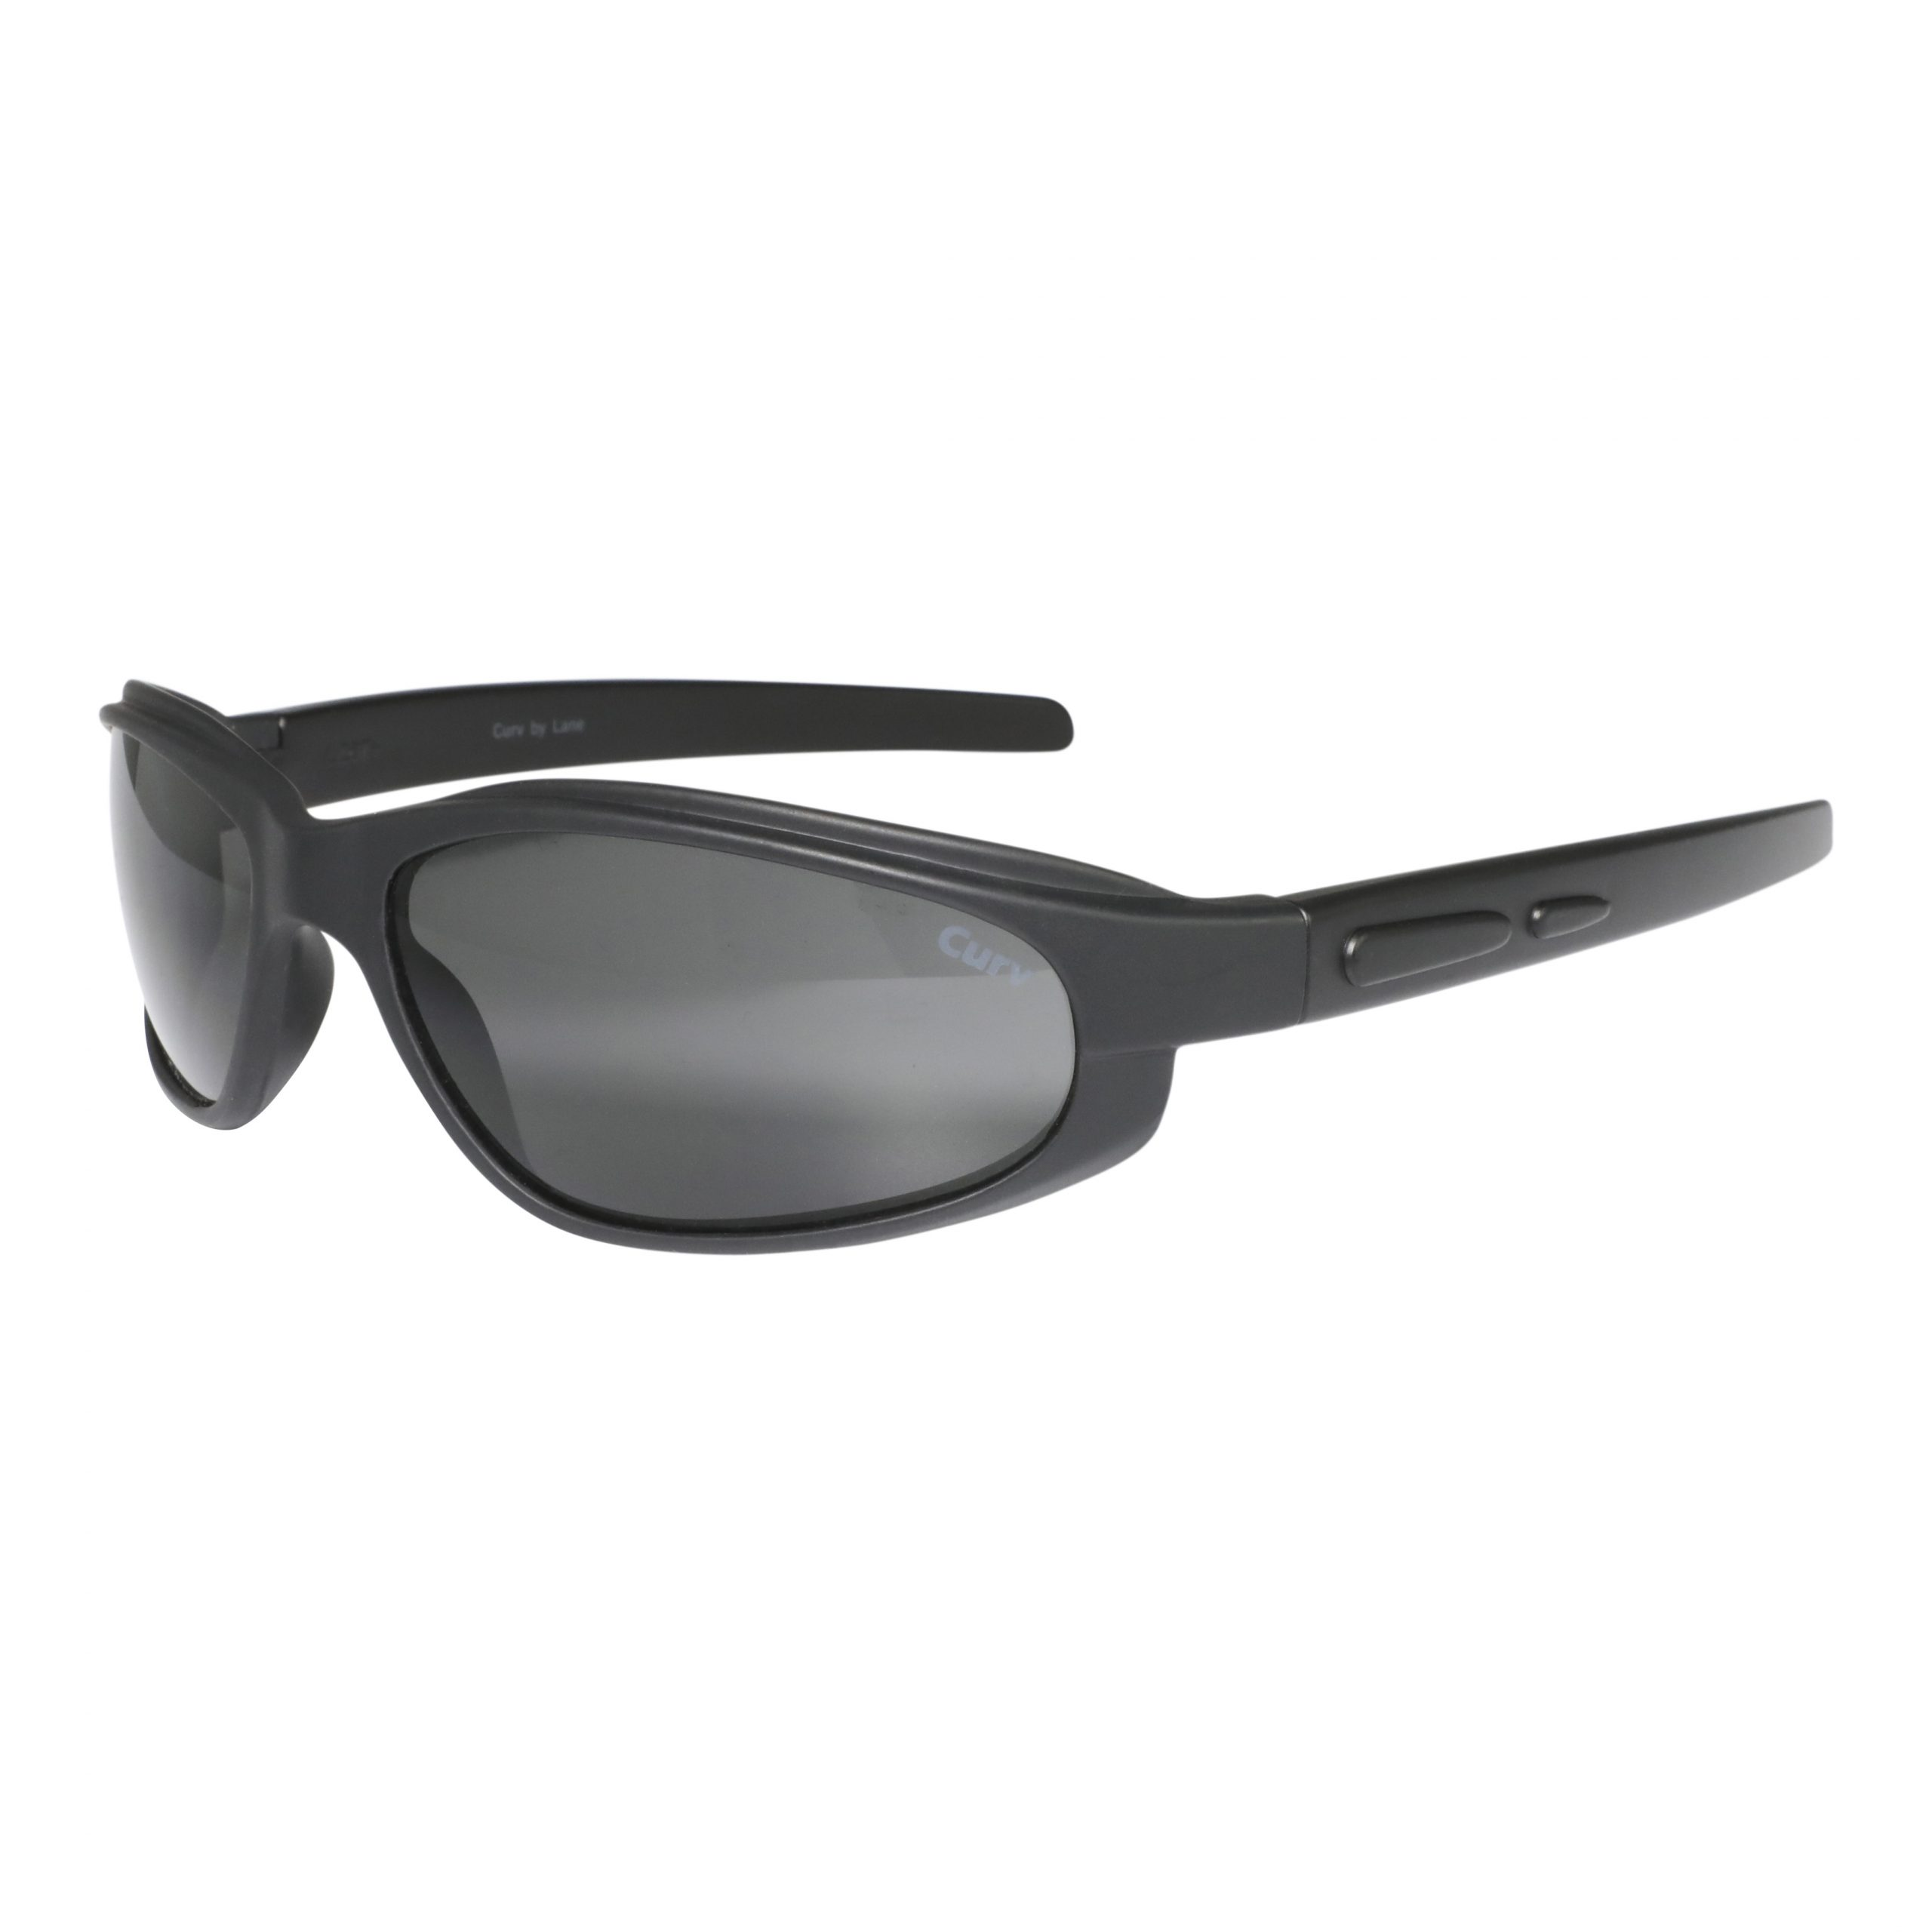 01-17M - CurvEX Matte Black Sunglasses with Smoke Lenses and Black Accent